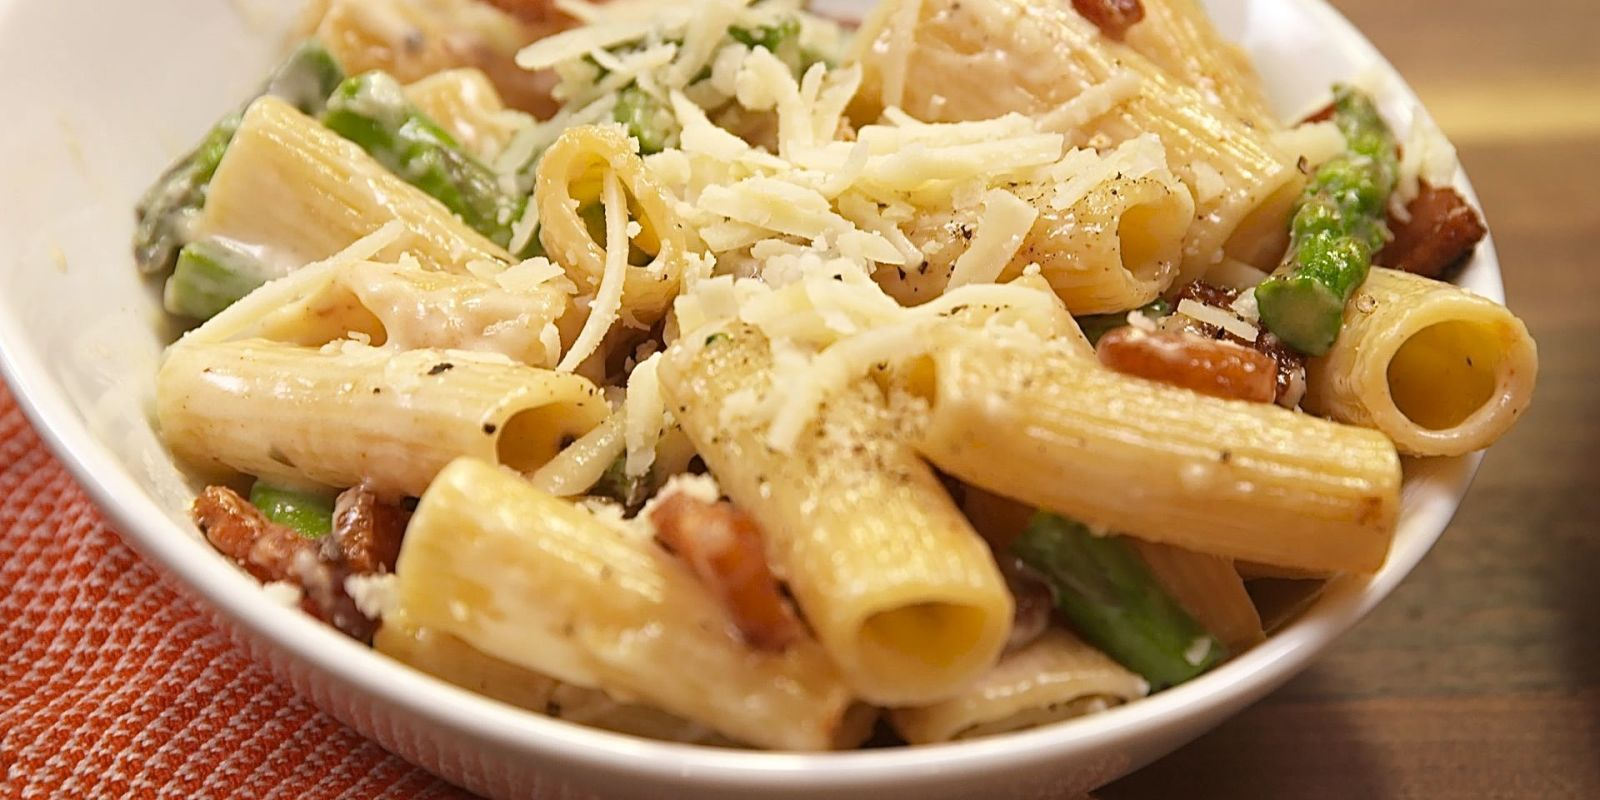 Best Bacon Asparagus Pasta - How to Make Bacon Asparagus Pasta